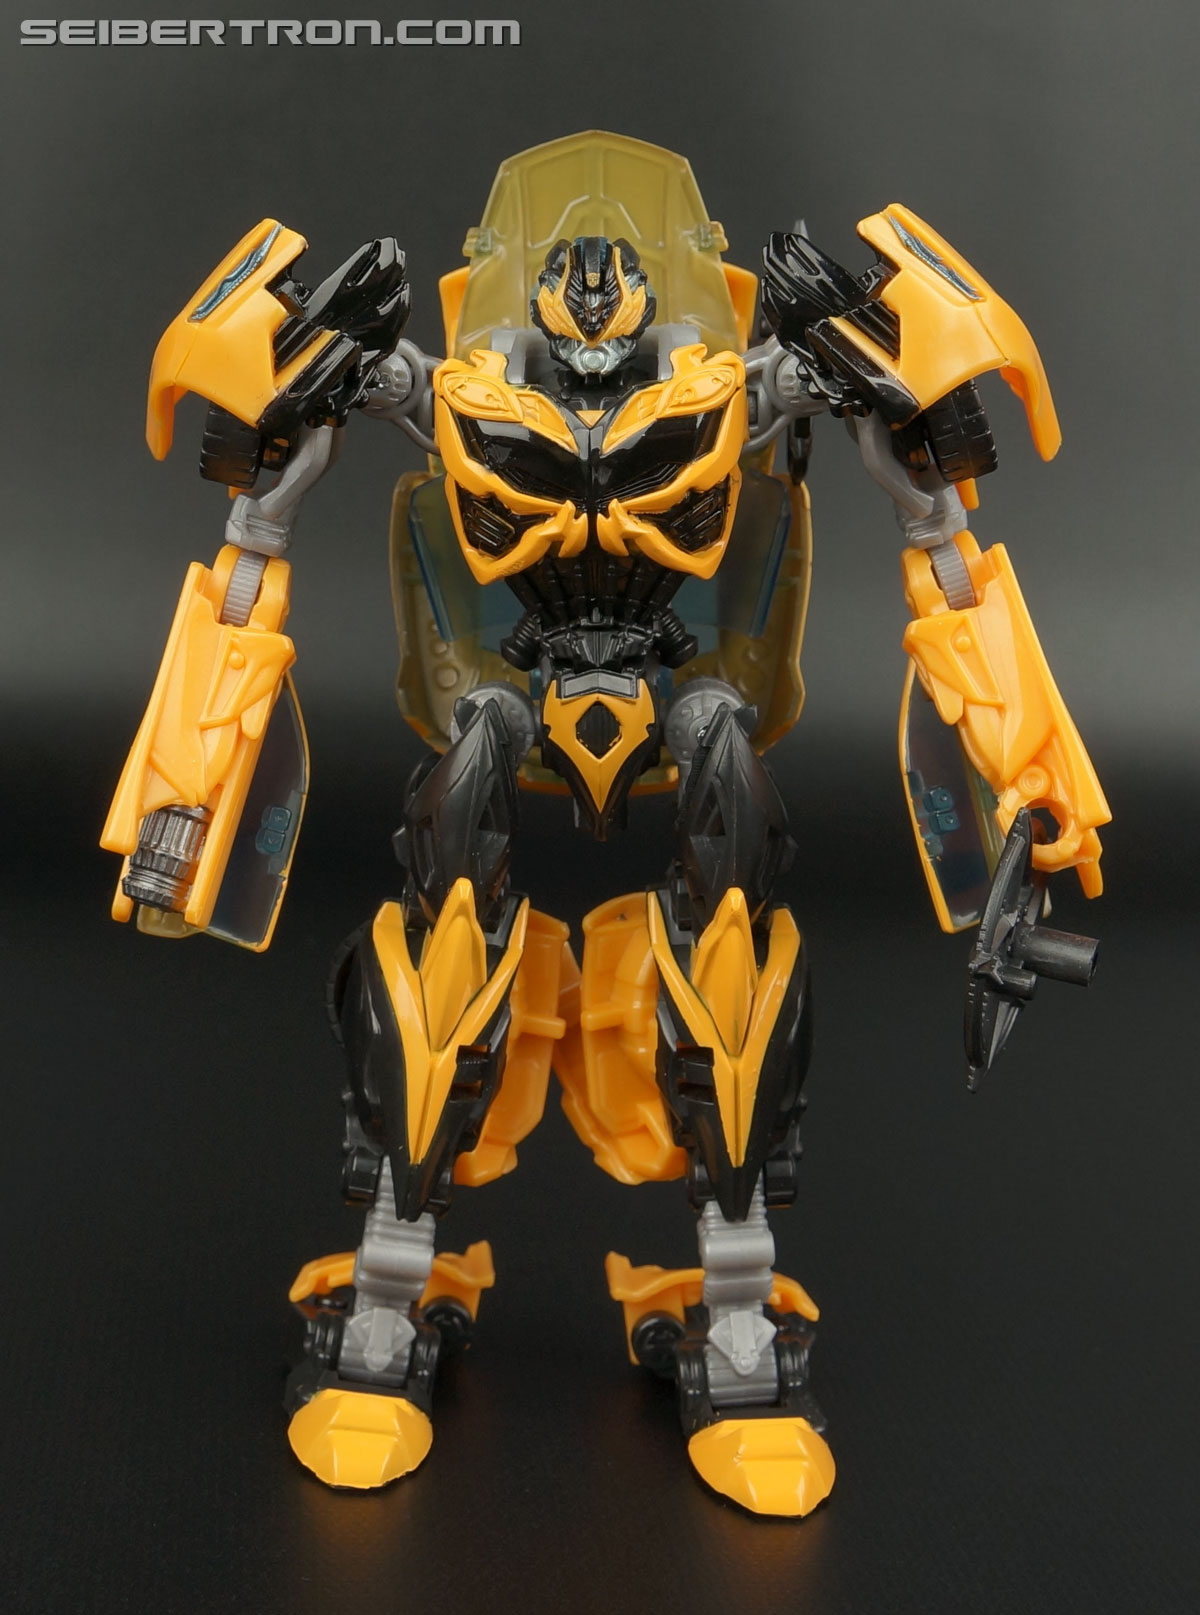 Transformers Age of Extinction: Generations Bumblebee (Image #84 of 190)